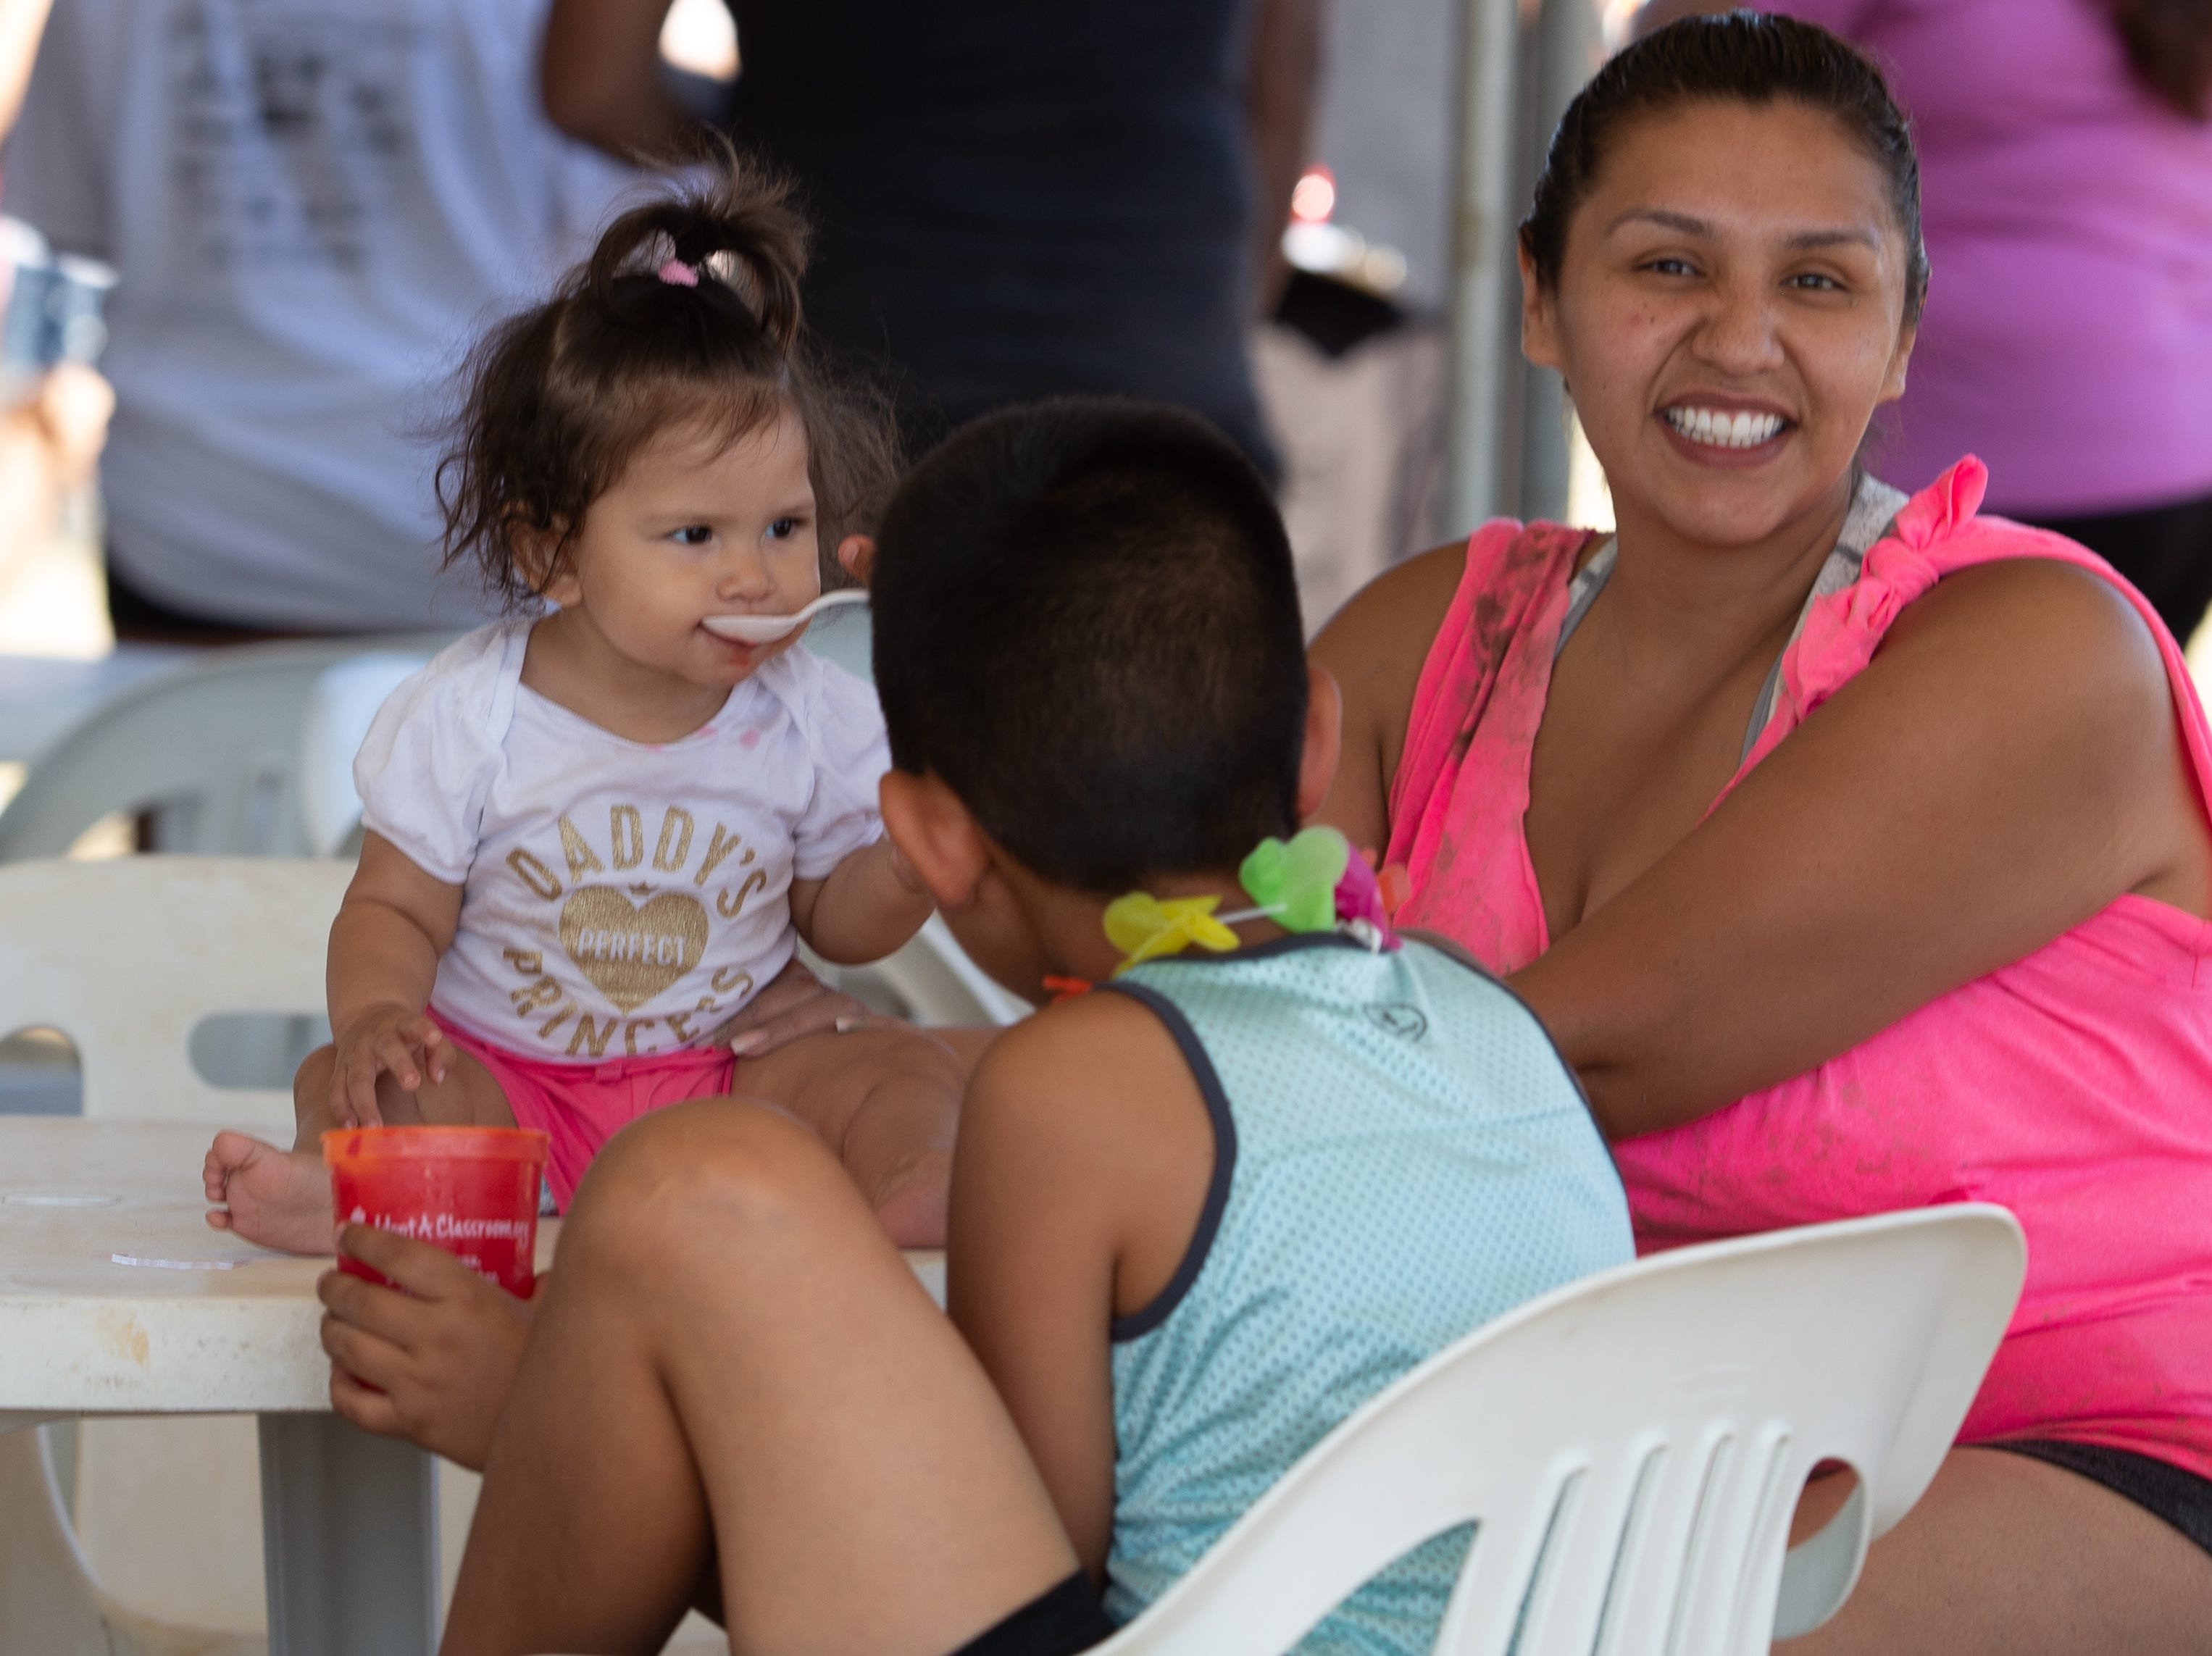 Vianny Moreno, 9 months enjoys a cool treat as her mother Viri looks on at the 9th Annual Mudd Volleyball tournament on September 8, 2018.